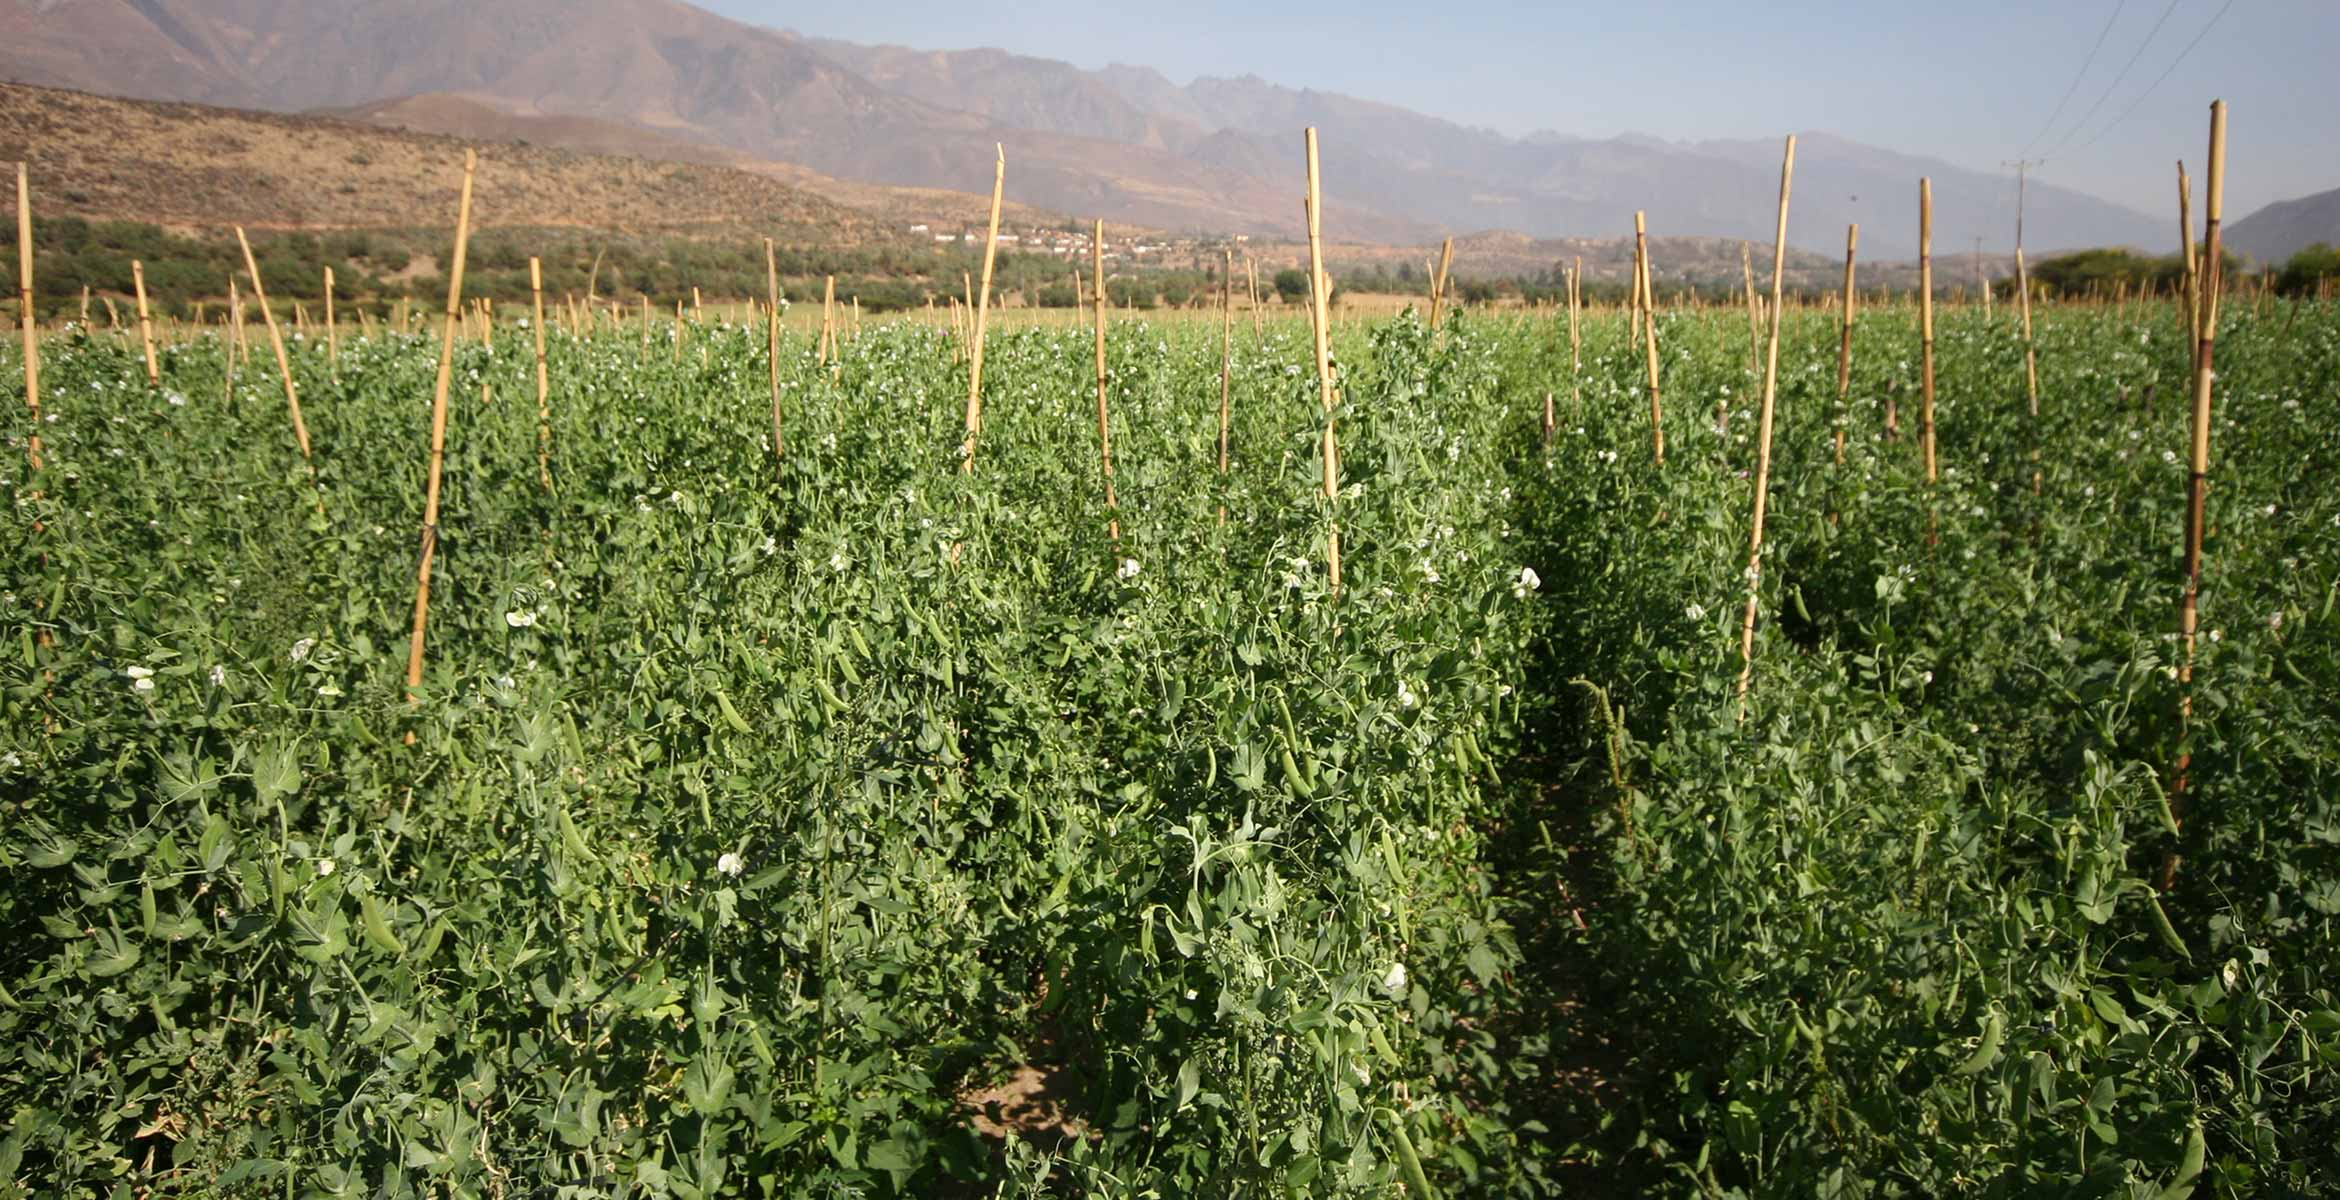 Photograph of legume plants growning on the Barfoots Nazca farm in Peru